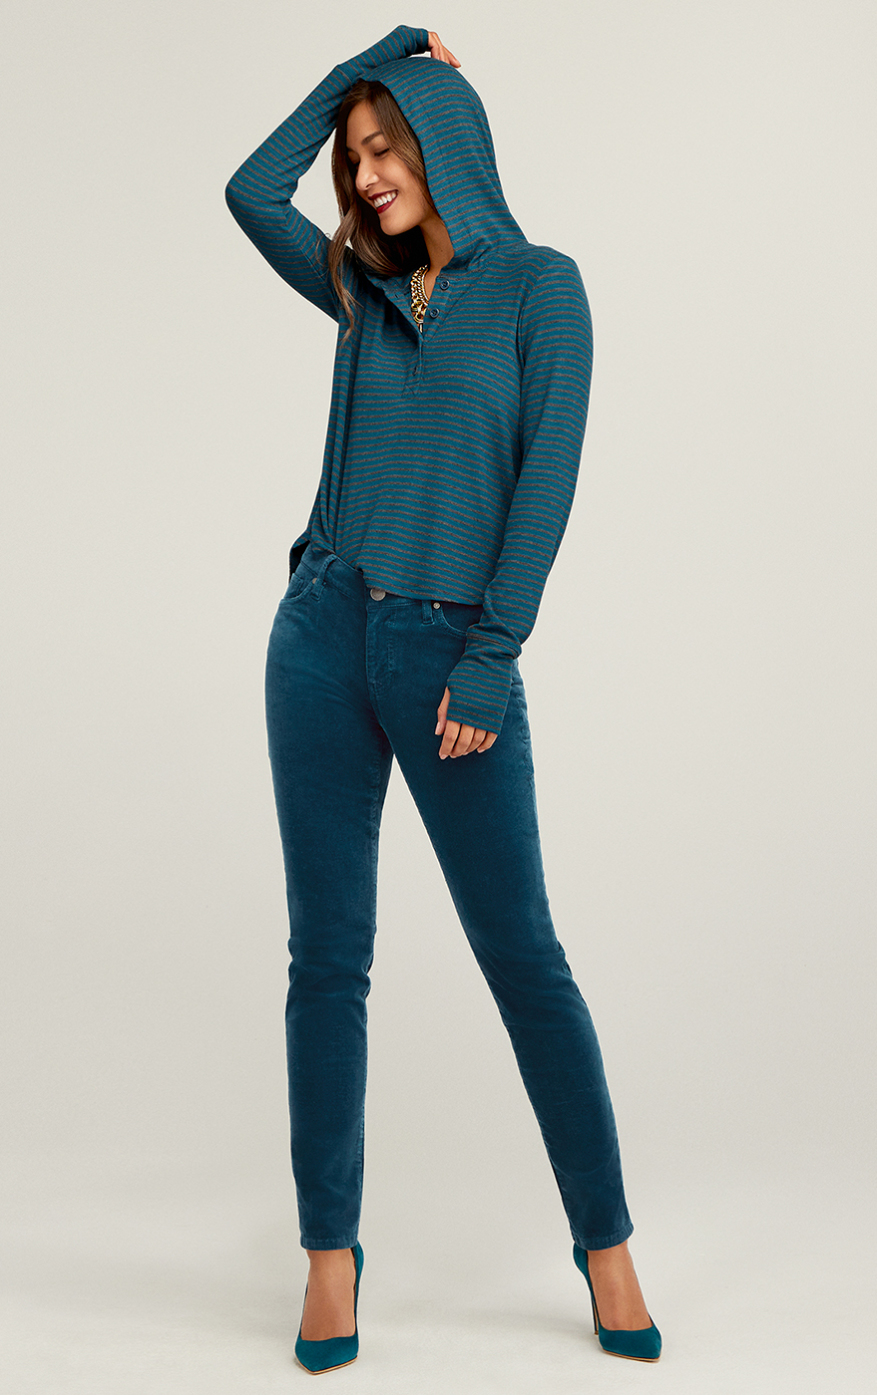 High Skinny in Moroccan Blue, Riff Hoodie in Charcoal and Moroccan Blue